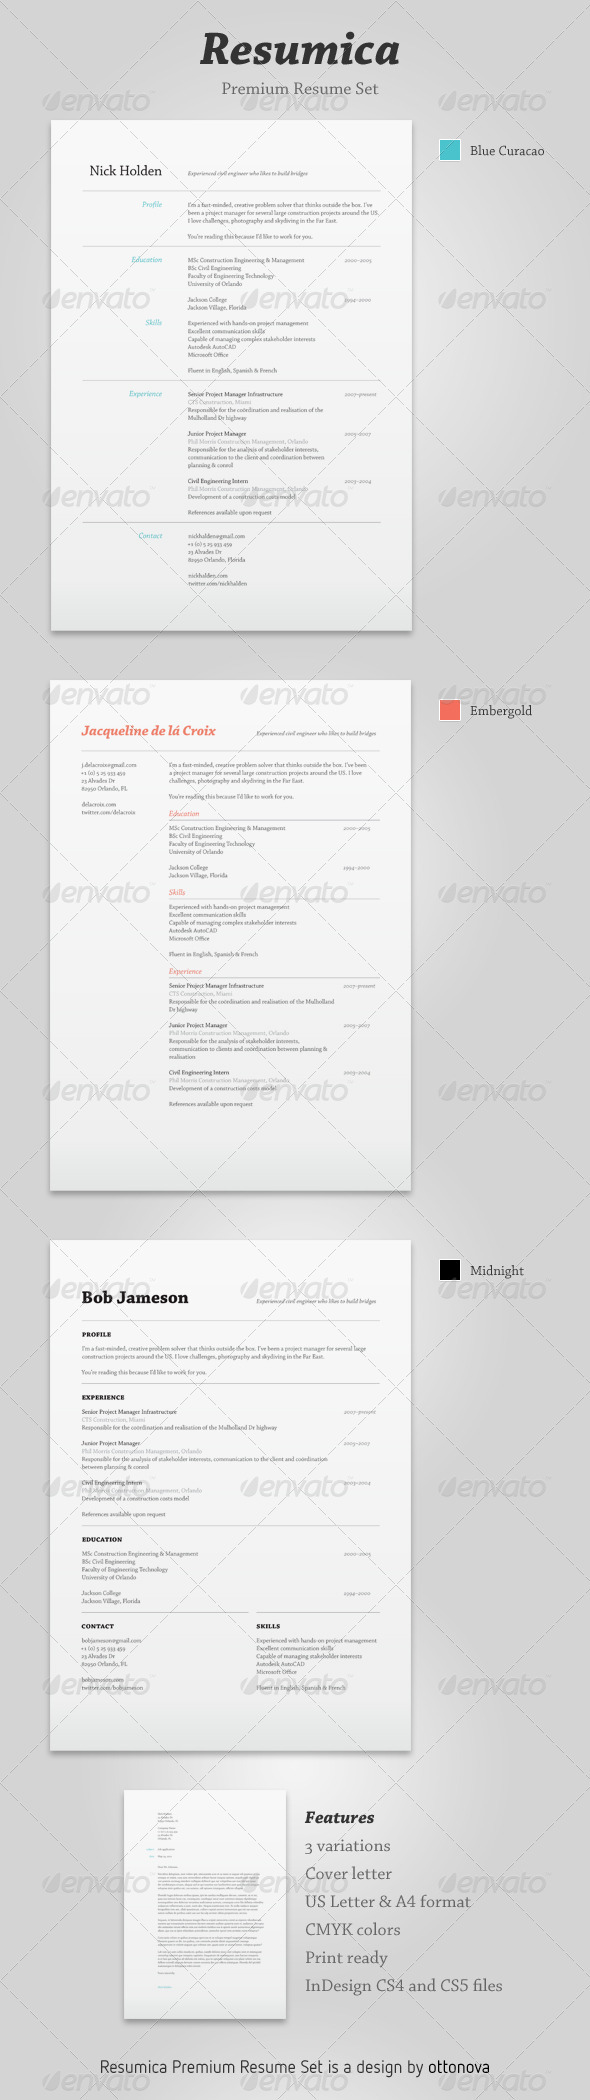 Resumica Resume Set - Resumes Stationery